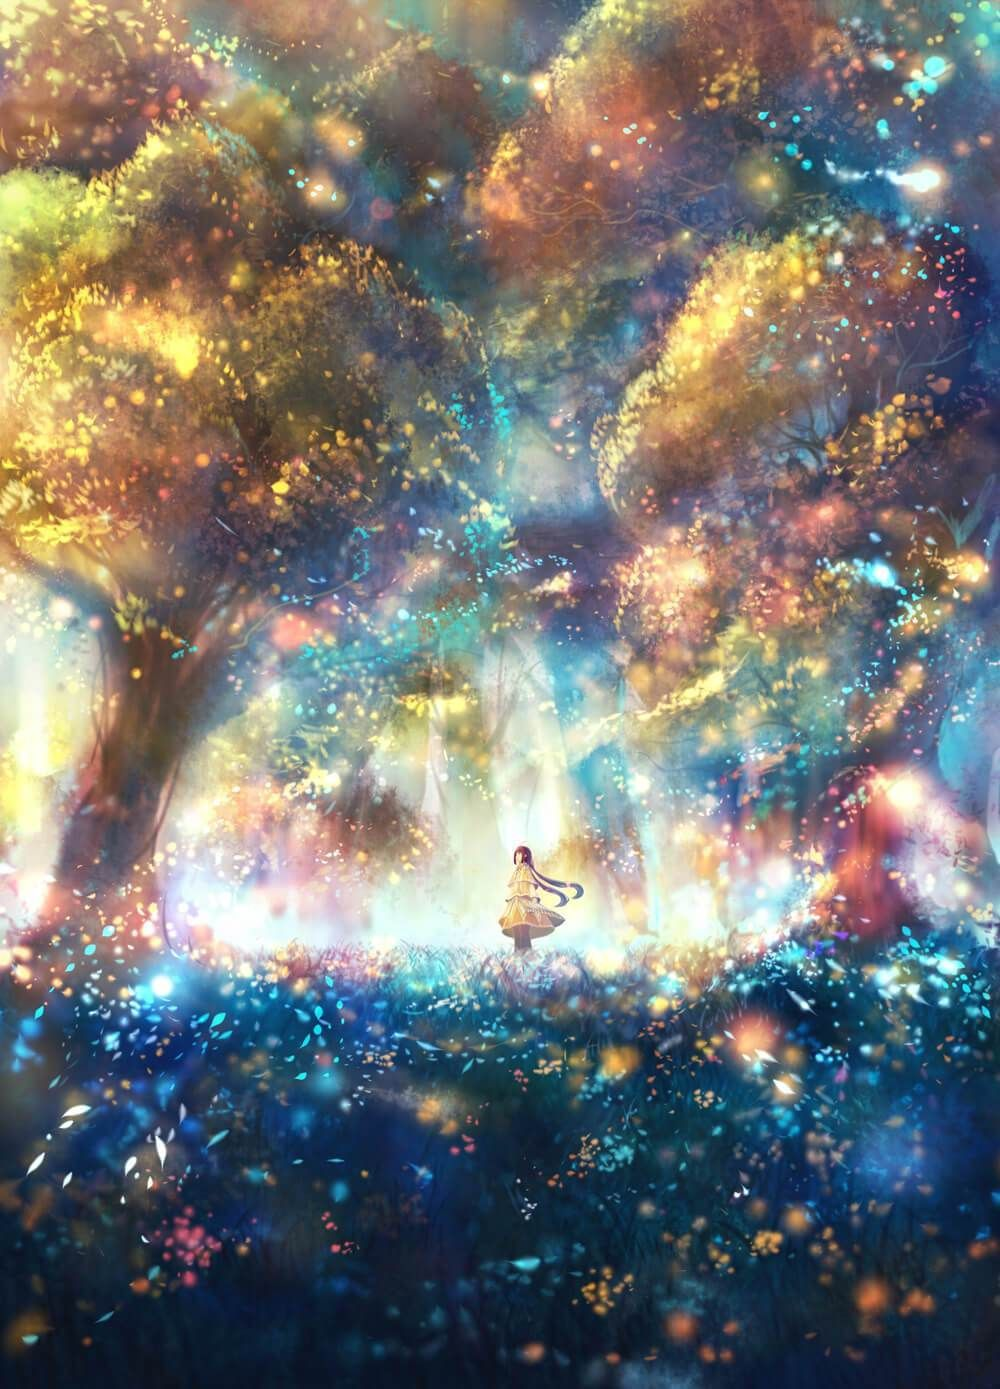 Most Beautiful Anime Drawings Illustrations To Inspire You Illustration Art Anime Drawing Digital Drawing Ani Anime Drawings Anime Wallpaper Anime Art